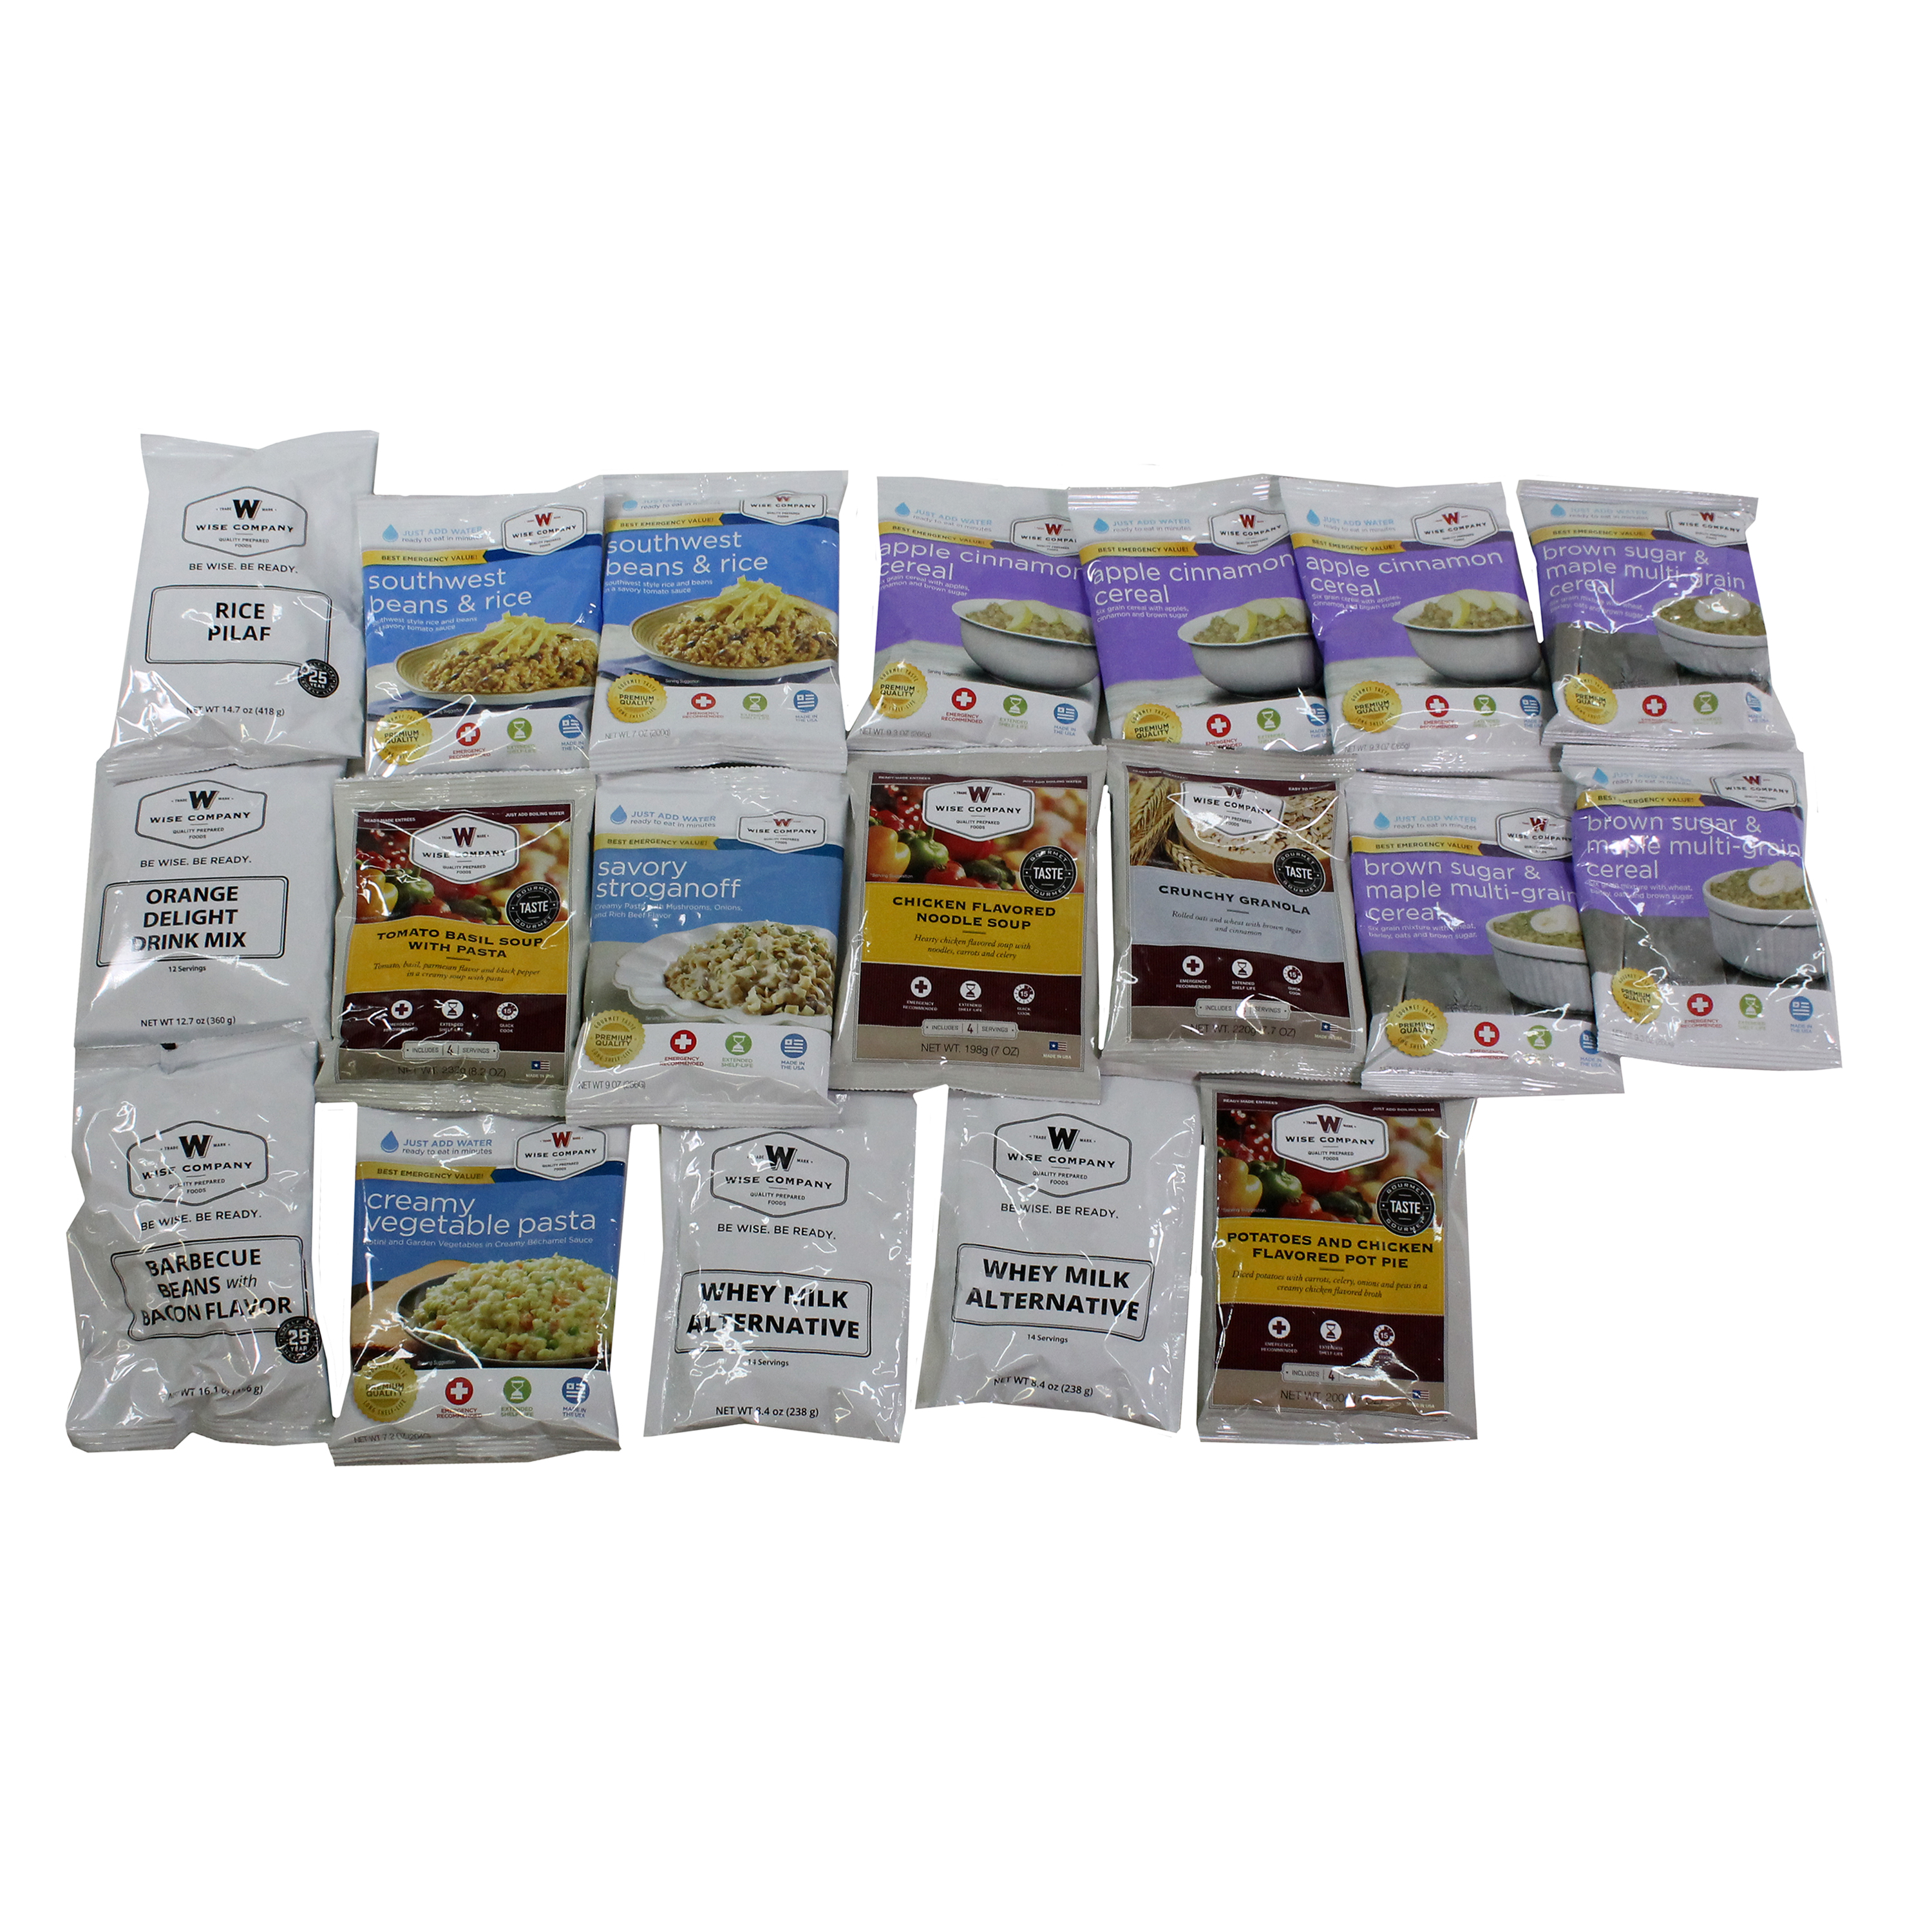 Wise Foods 1 Month Supply Pack (112 Servings) by Wise Foods